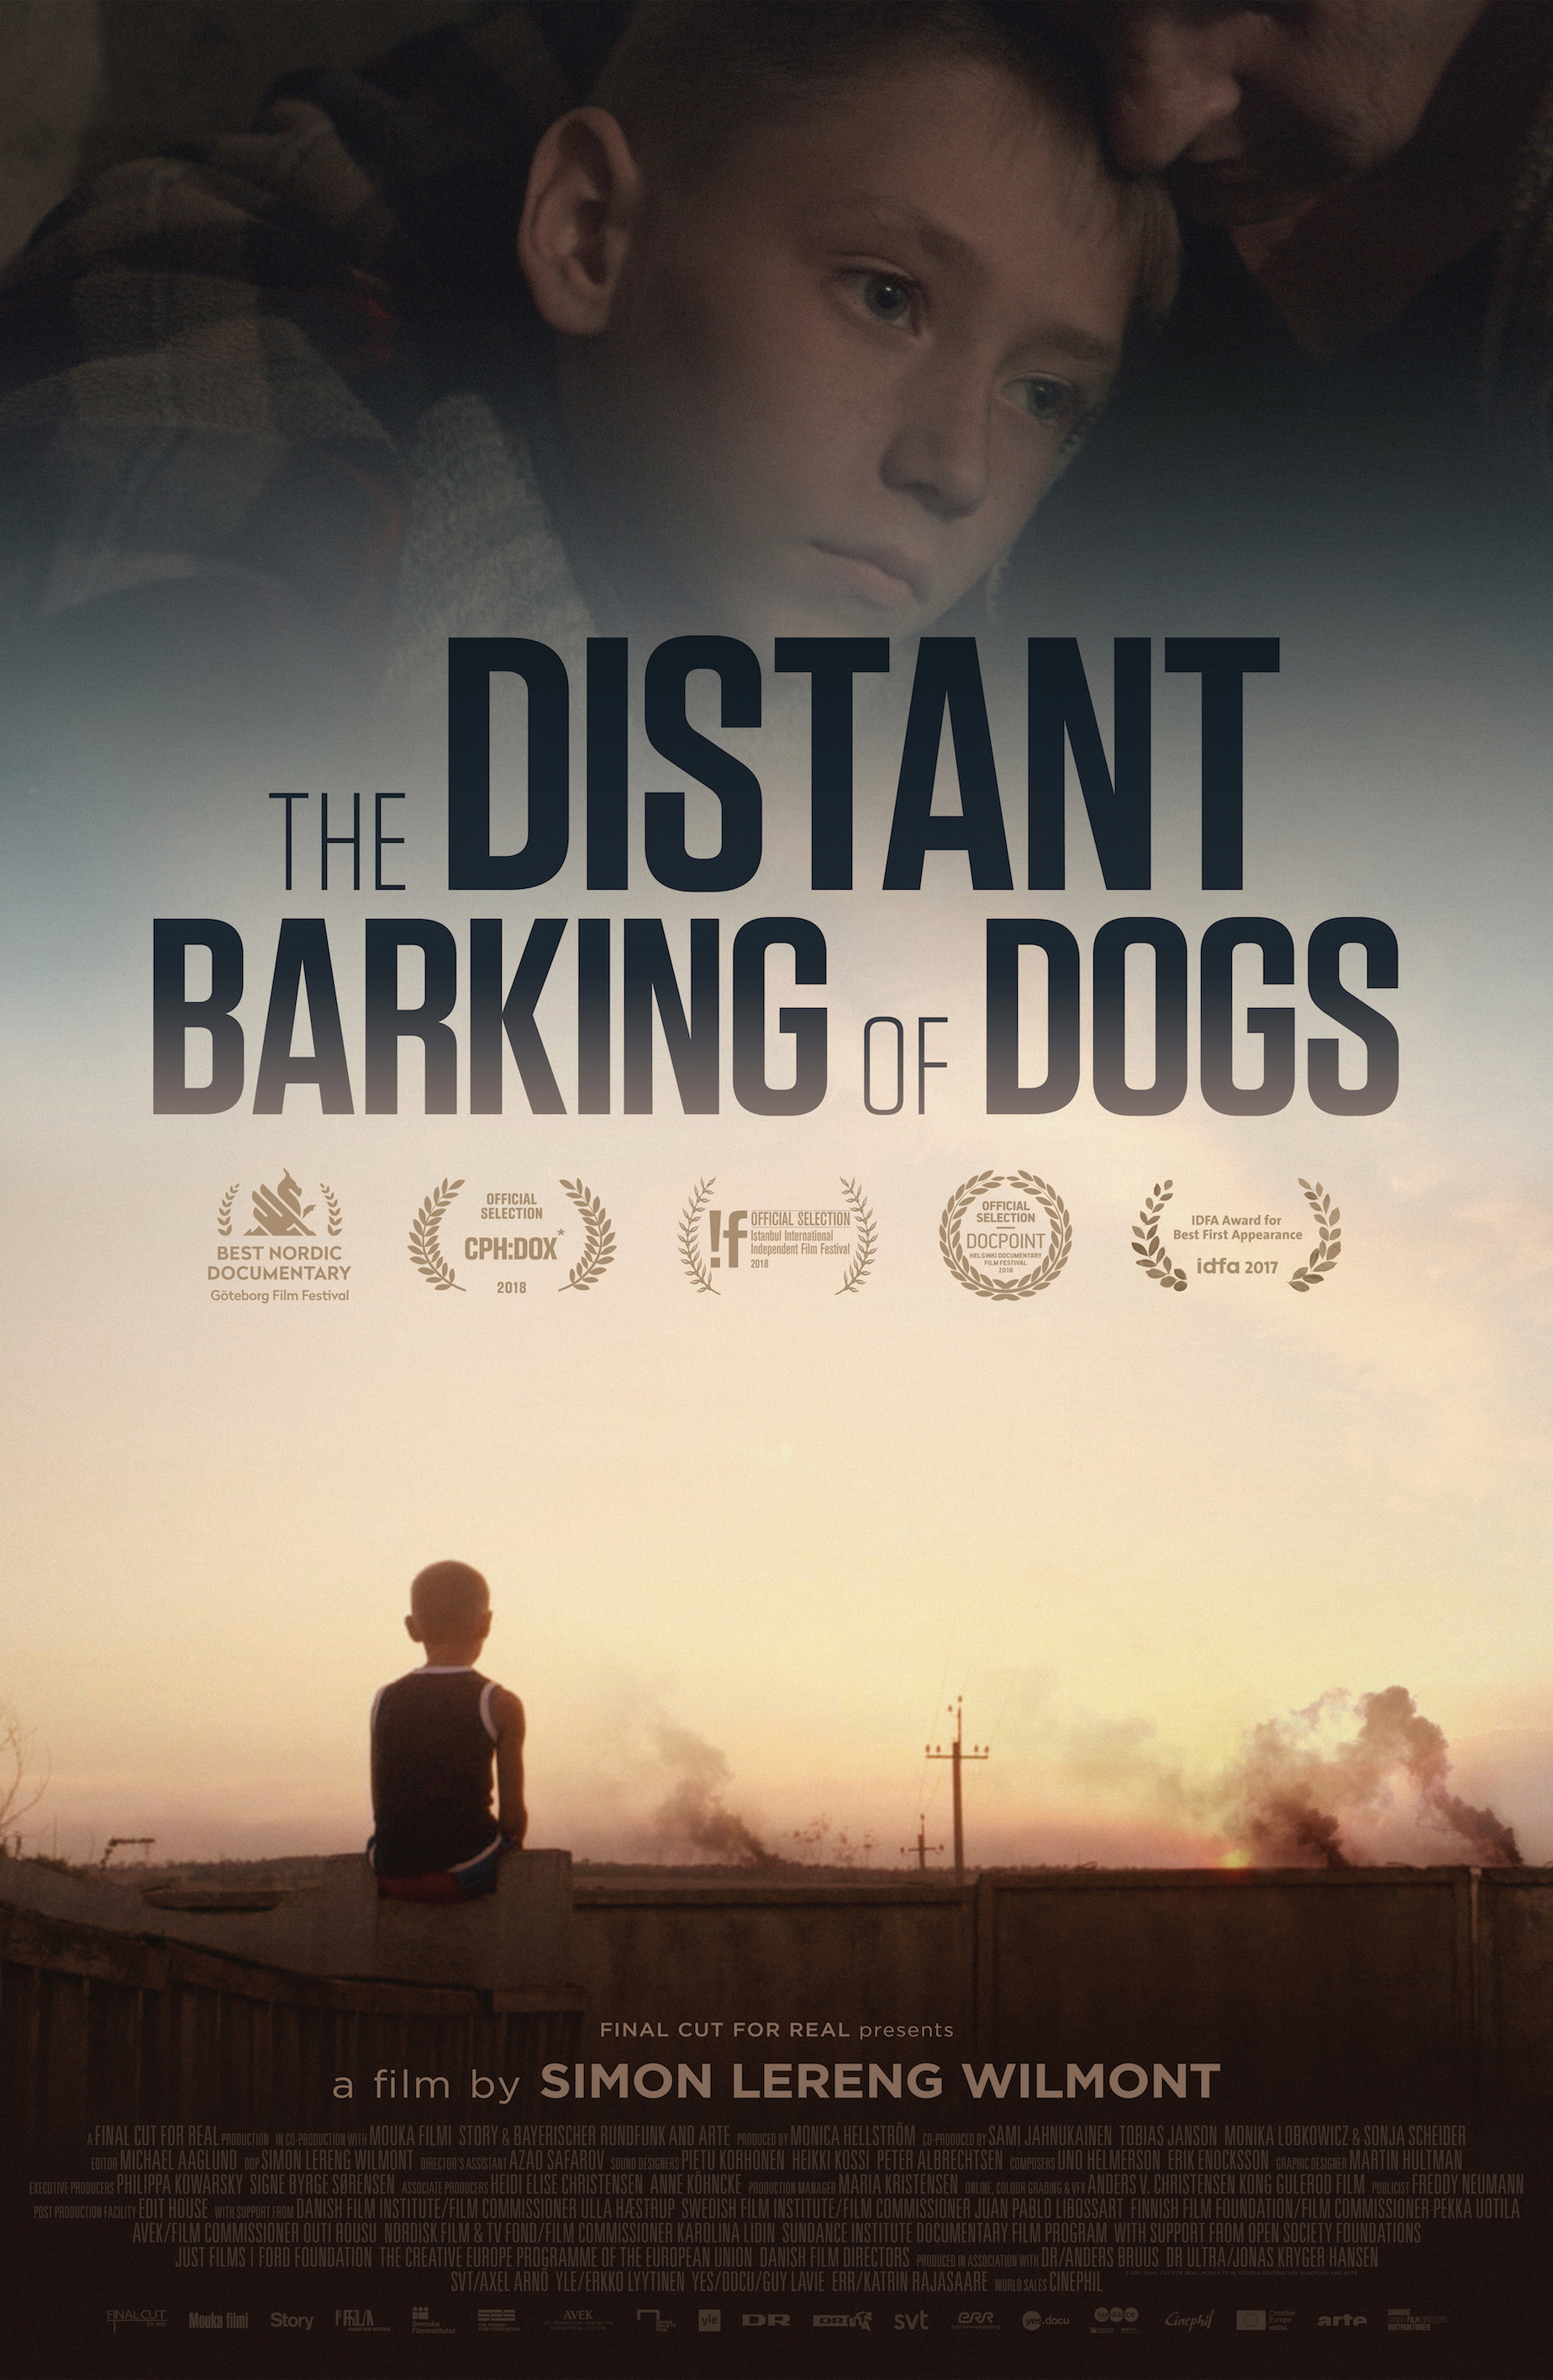 The Distant Barking of Dogs – Feb. 7